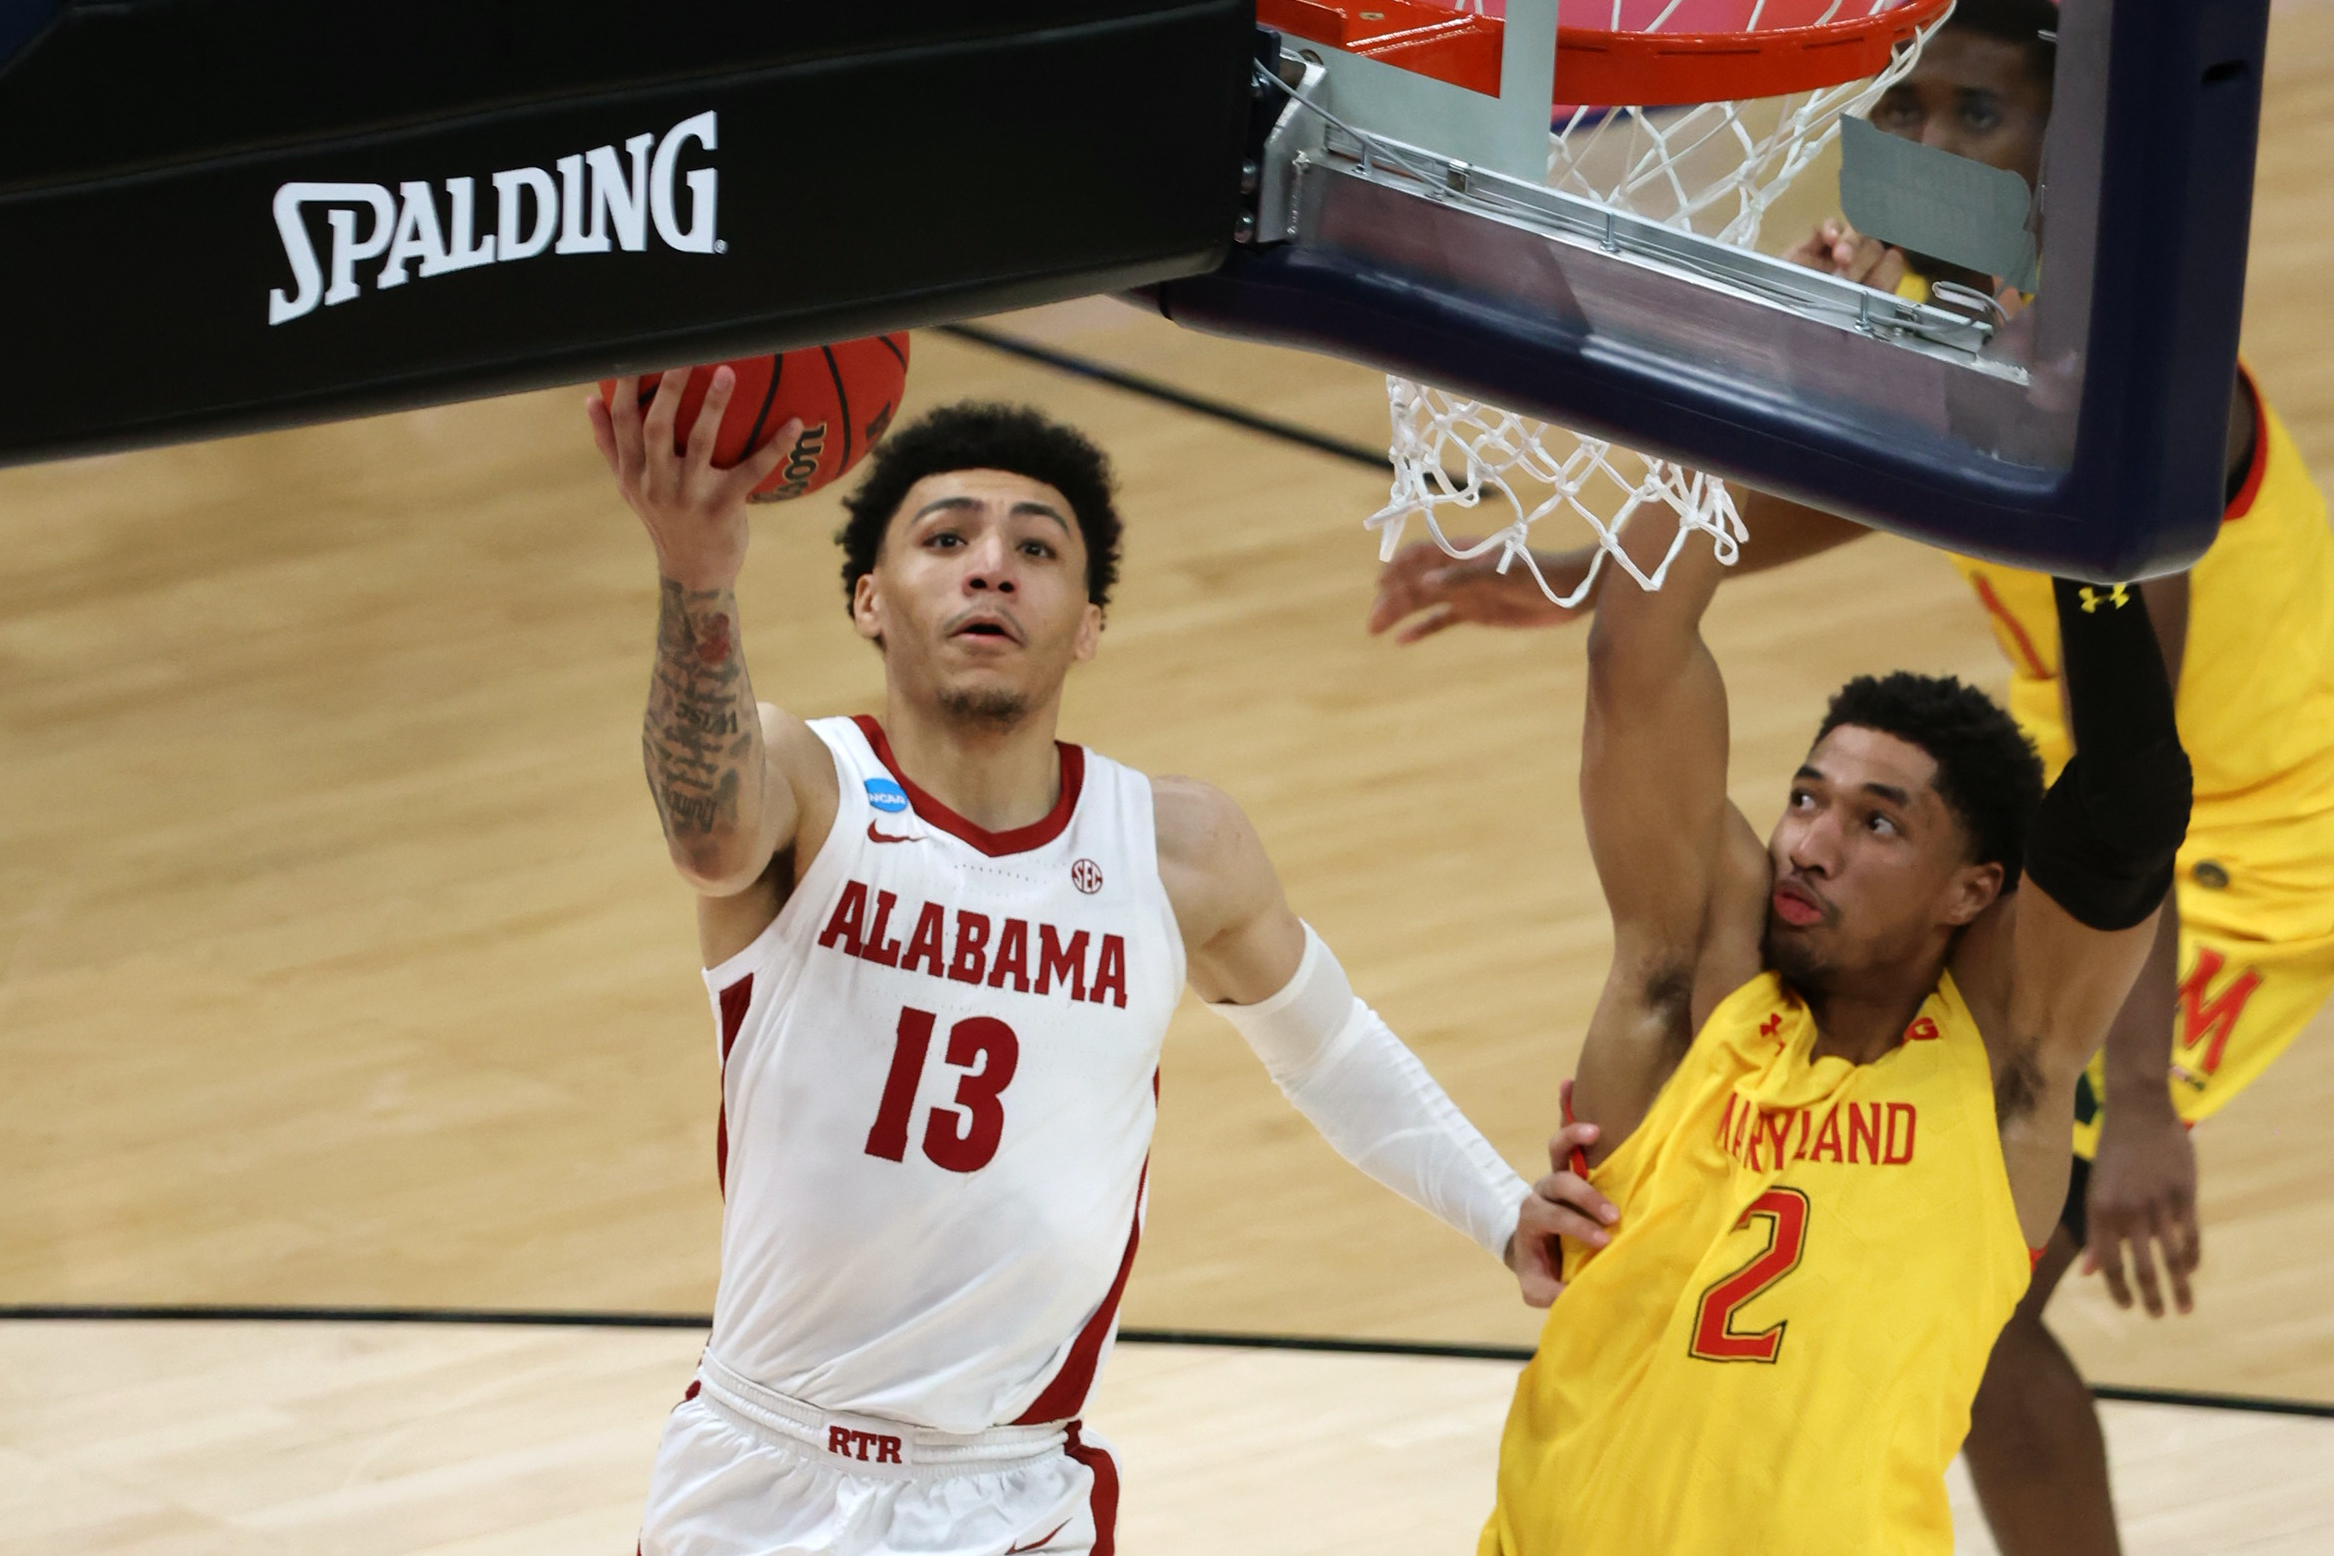 Mar 22, 2021; Indianapolis, Indiana, USA; Alabama Crimson Tide guard Jahvon Quinerly (13) shoots against Maryland Terrapins guard Aaron Wiggins (2) in the second half in the second round of the 2021 NCAA Tournament at Bankers Life Fieldhouse.